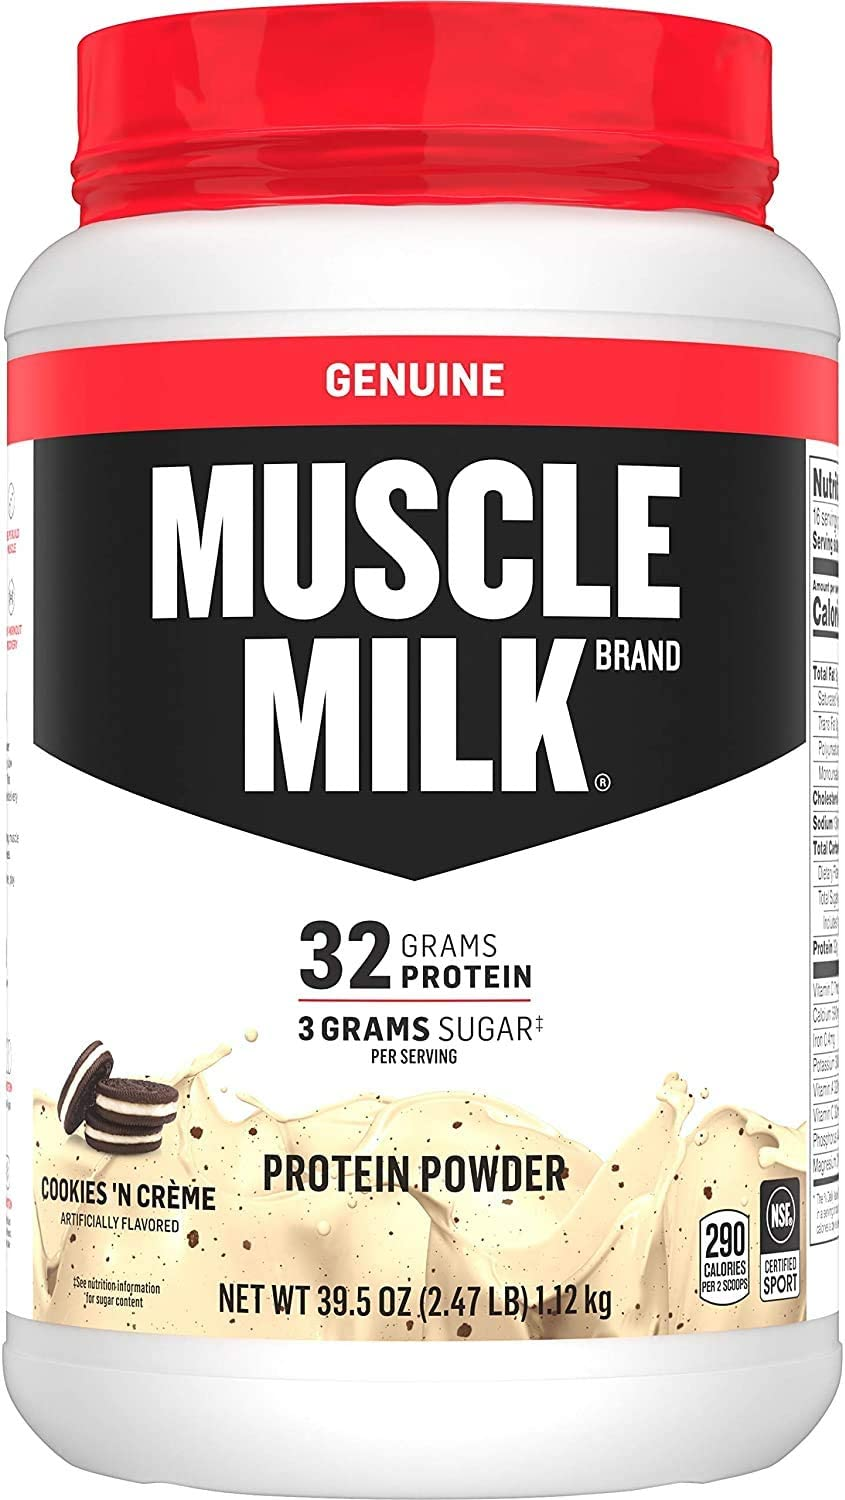 Muscle Milk Genuine Protein Powder, Cookies 'N Crème, 32g Protein, 2.47 Pound, 16 Servings